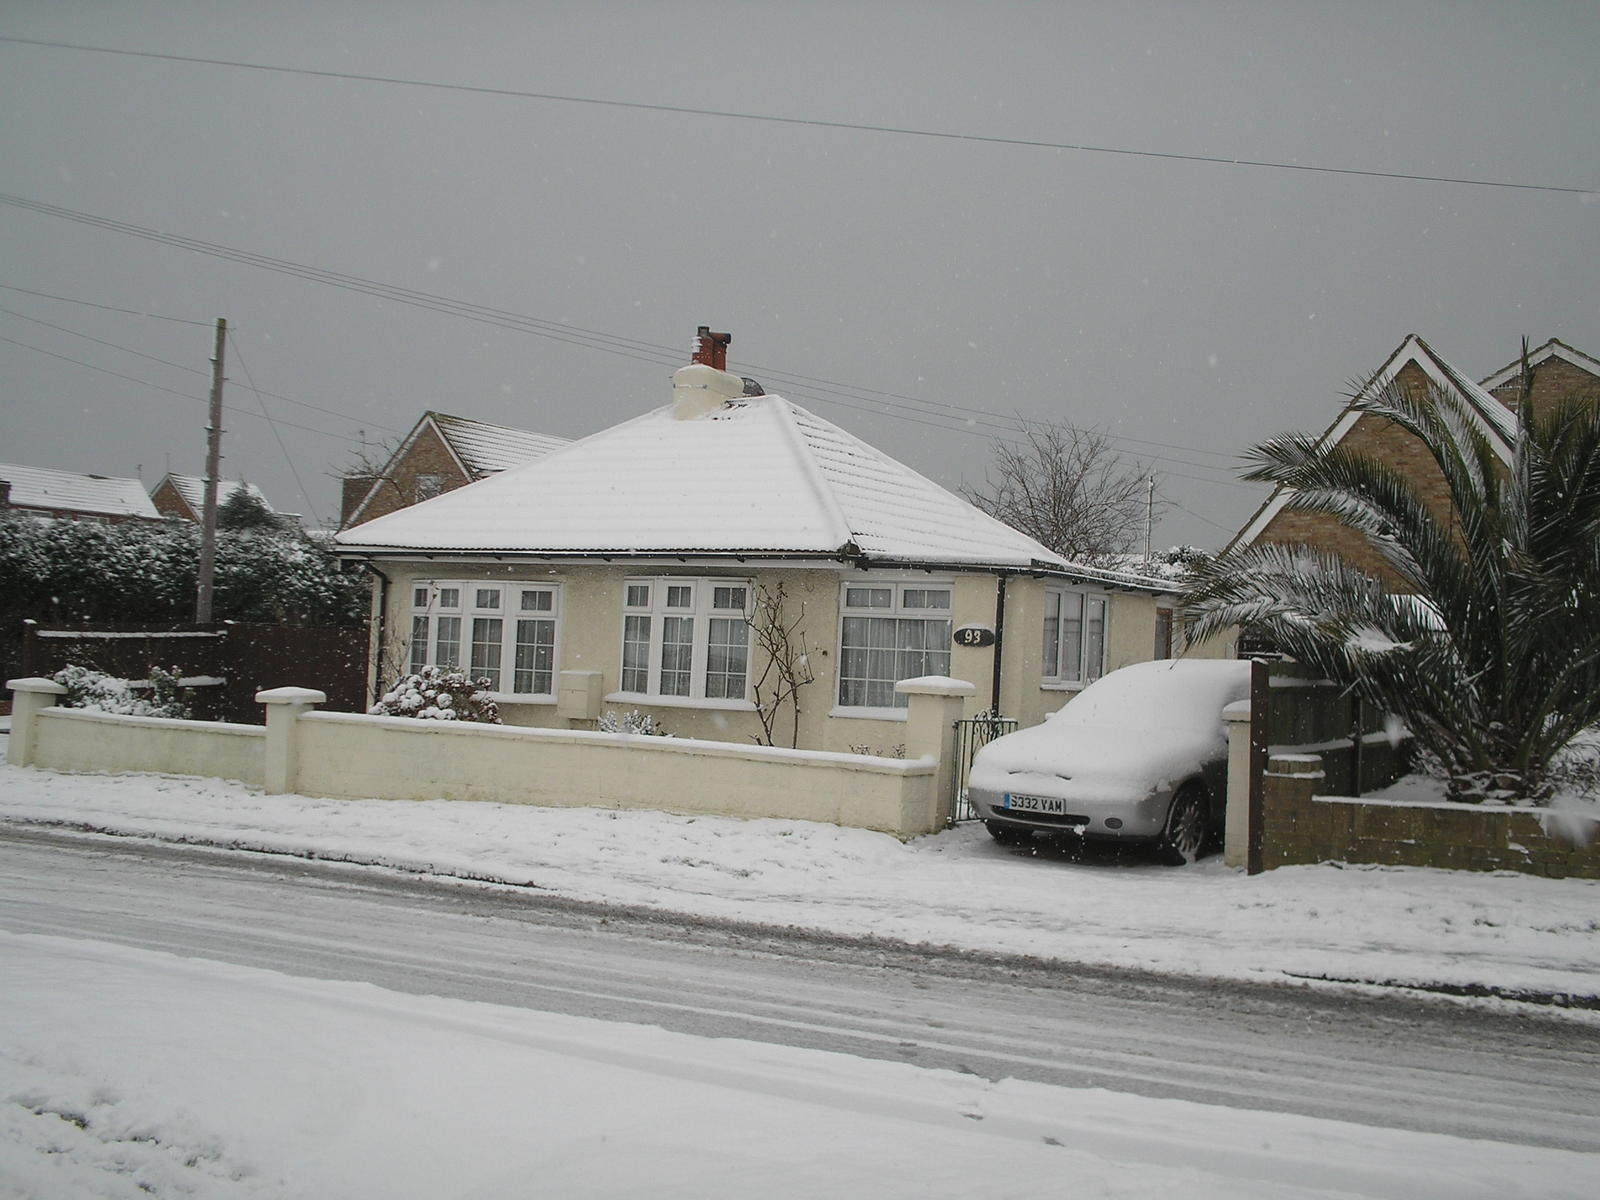 My little Bungalow in the snow